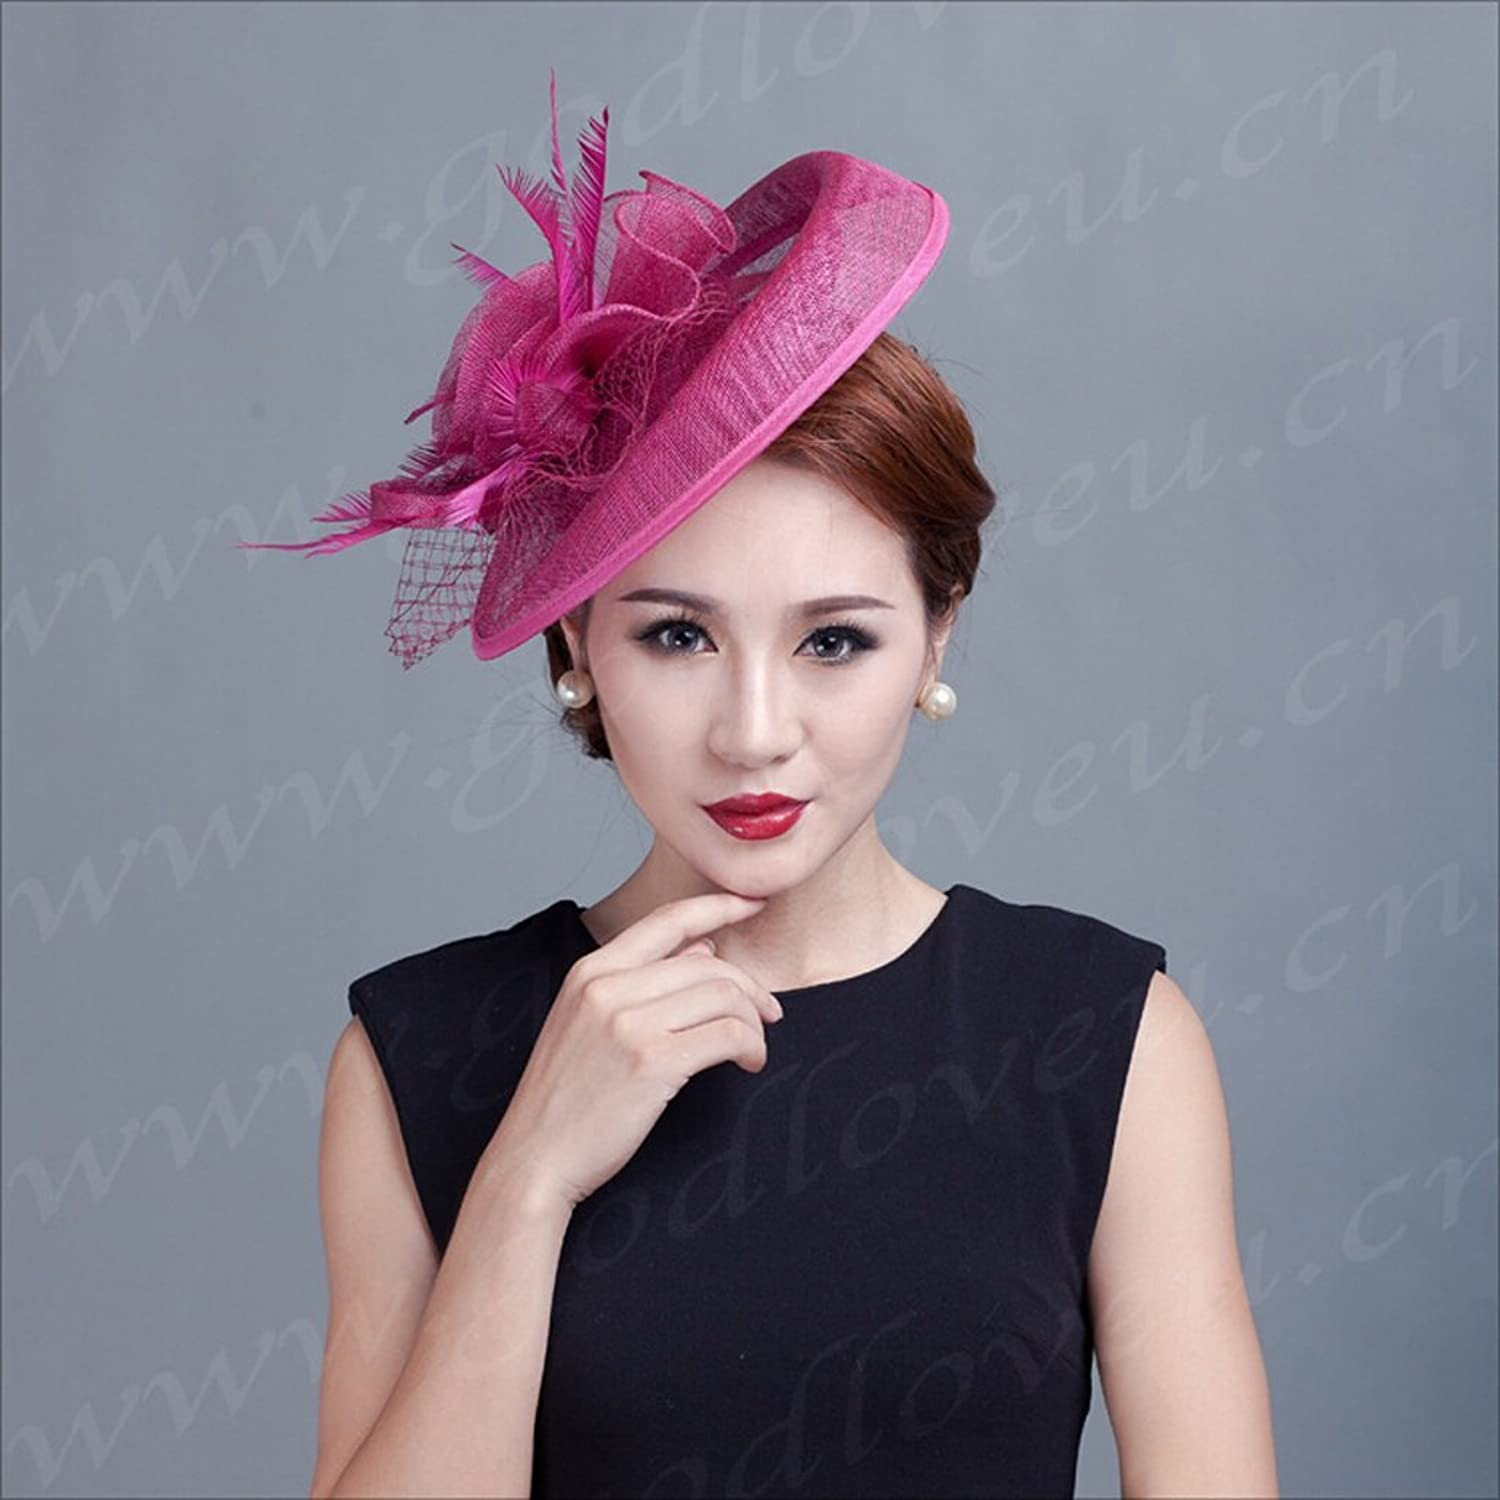 LYQZ European Women Headdress Fashion Party Bowler Hat Philippines Hemp Material Multicolor (color   Deep red)